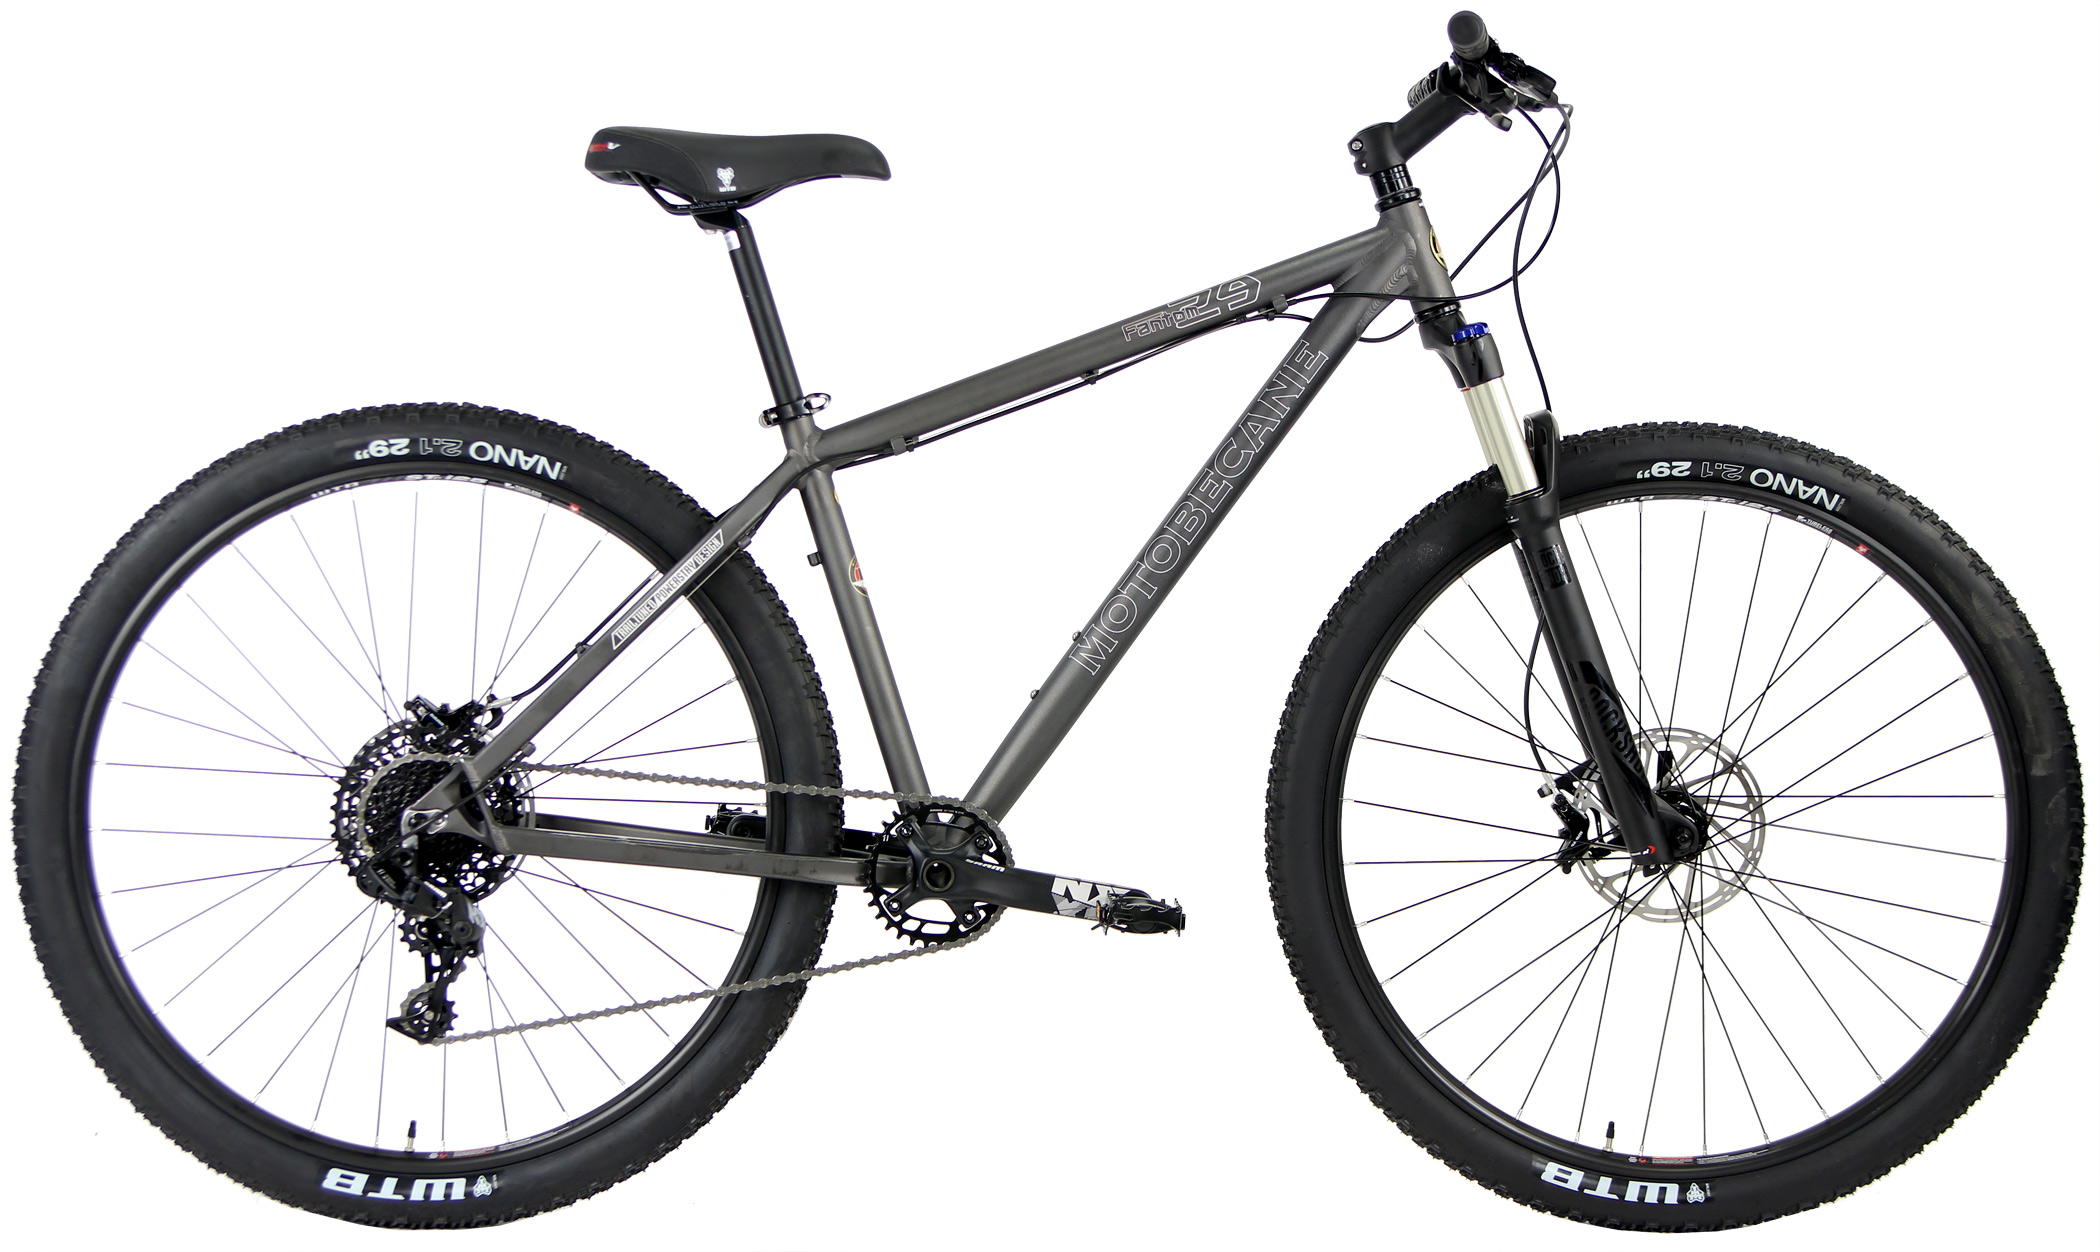 Bikes Motobecane Fantom 29 NX 1 x 11 Mountain Bike Image